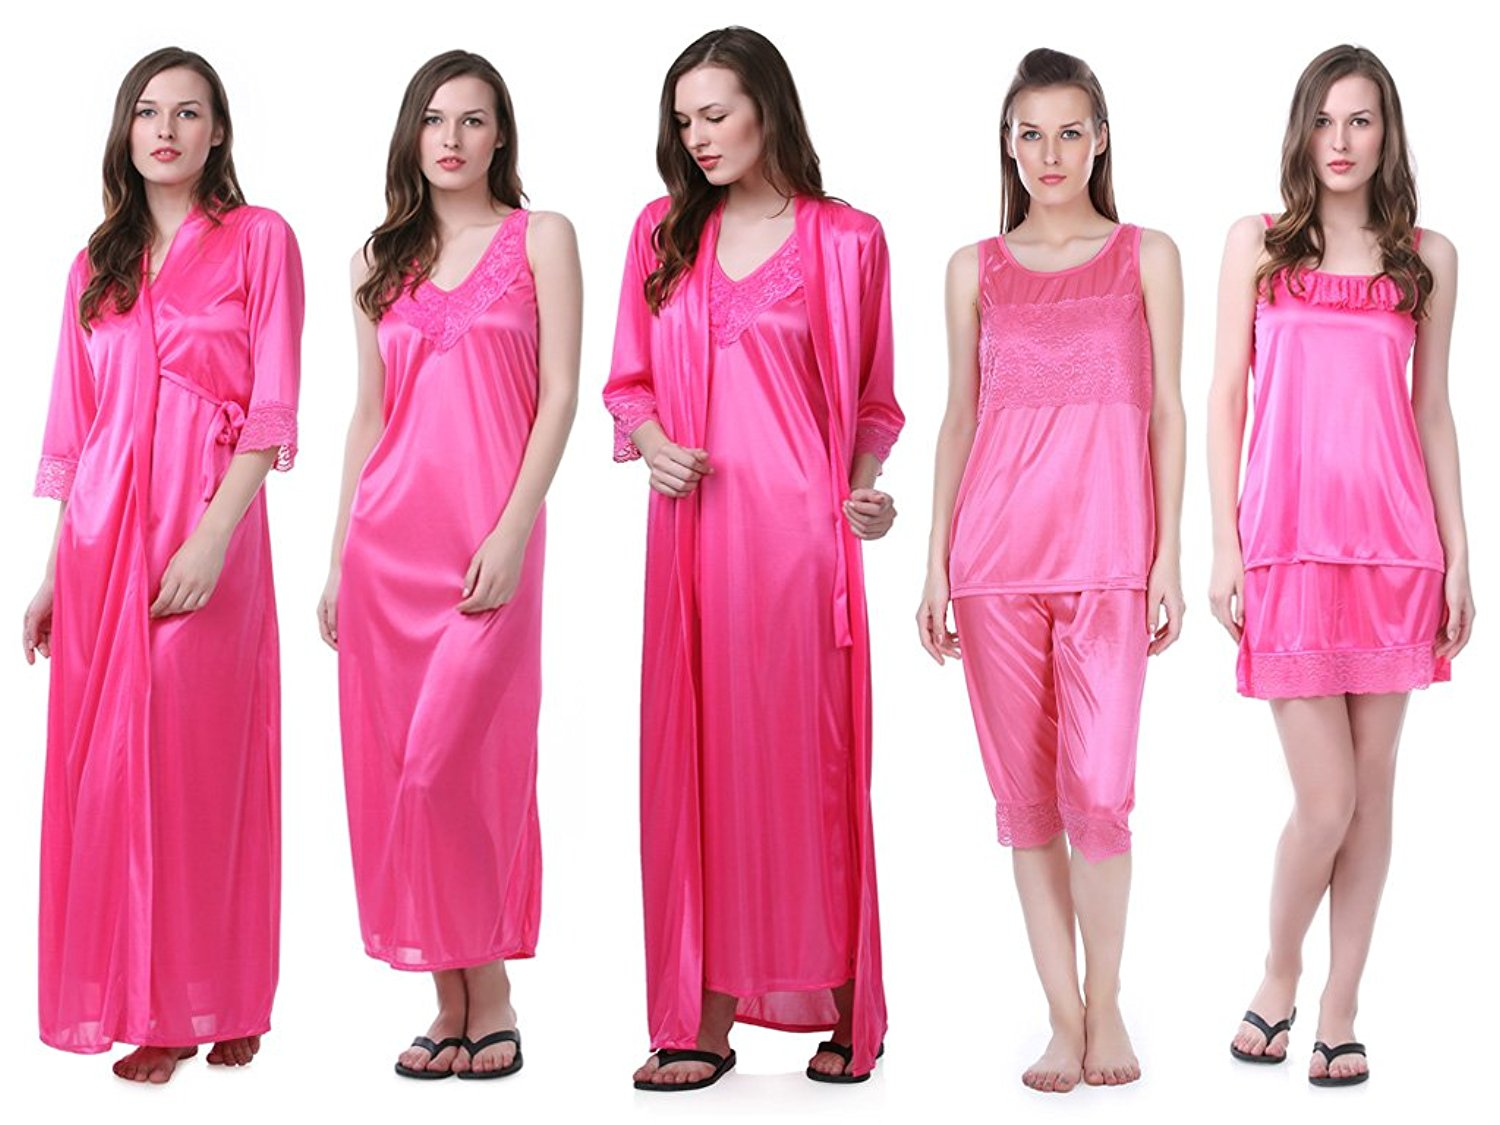 night dress 6pc (6) dyjkvpw